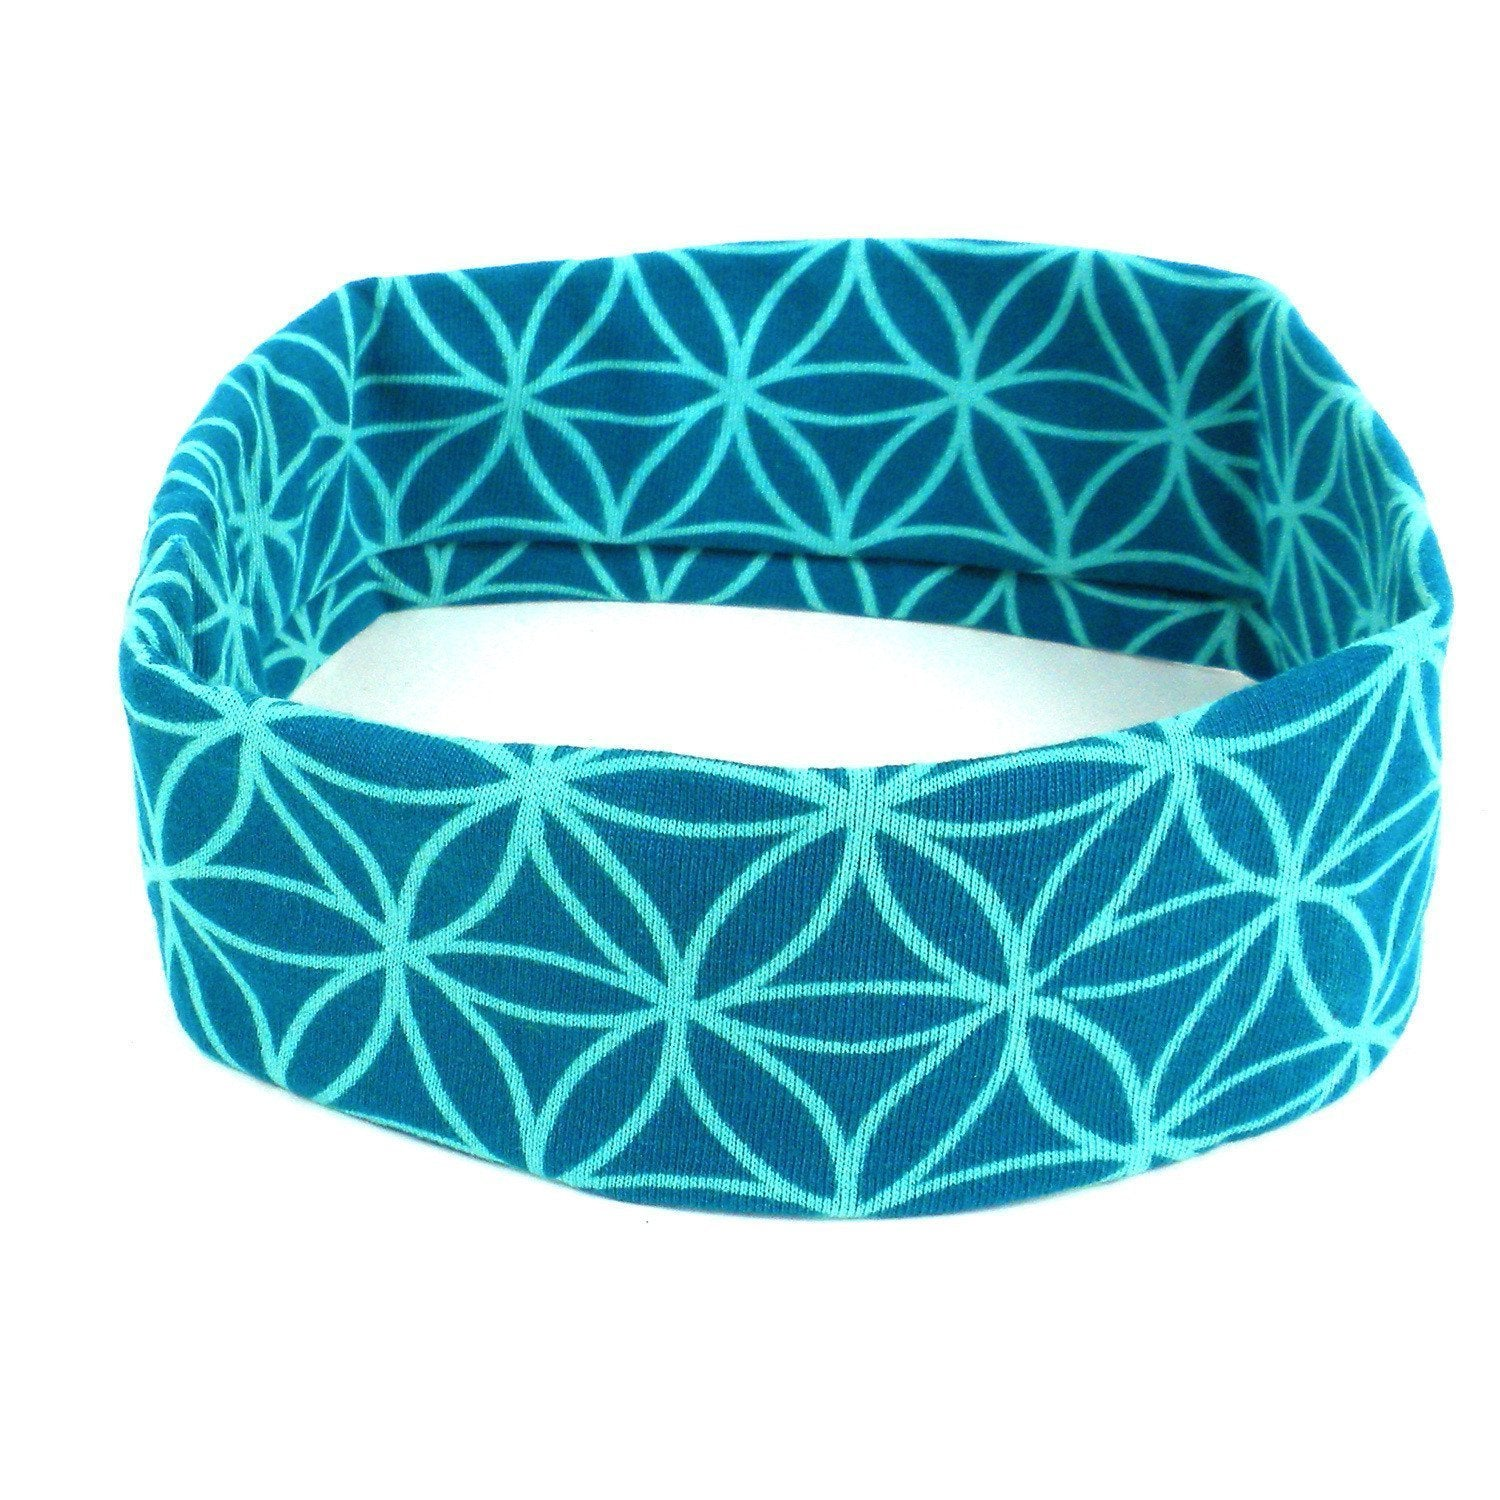 Flower of Life Headband - Teal